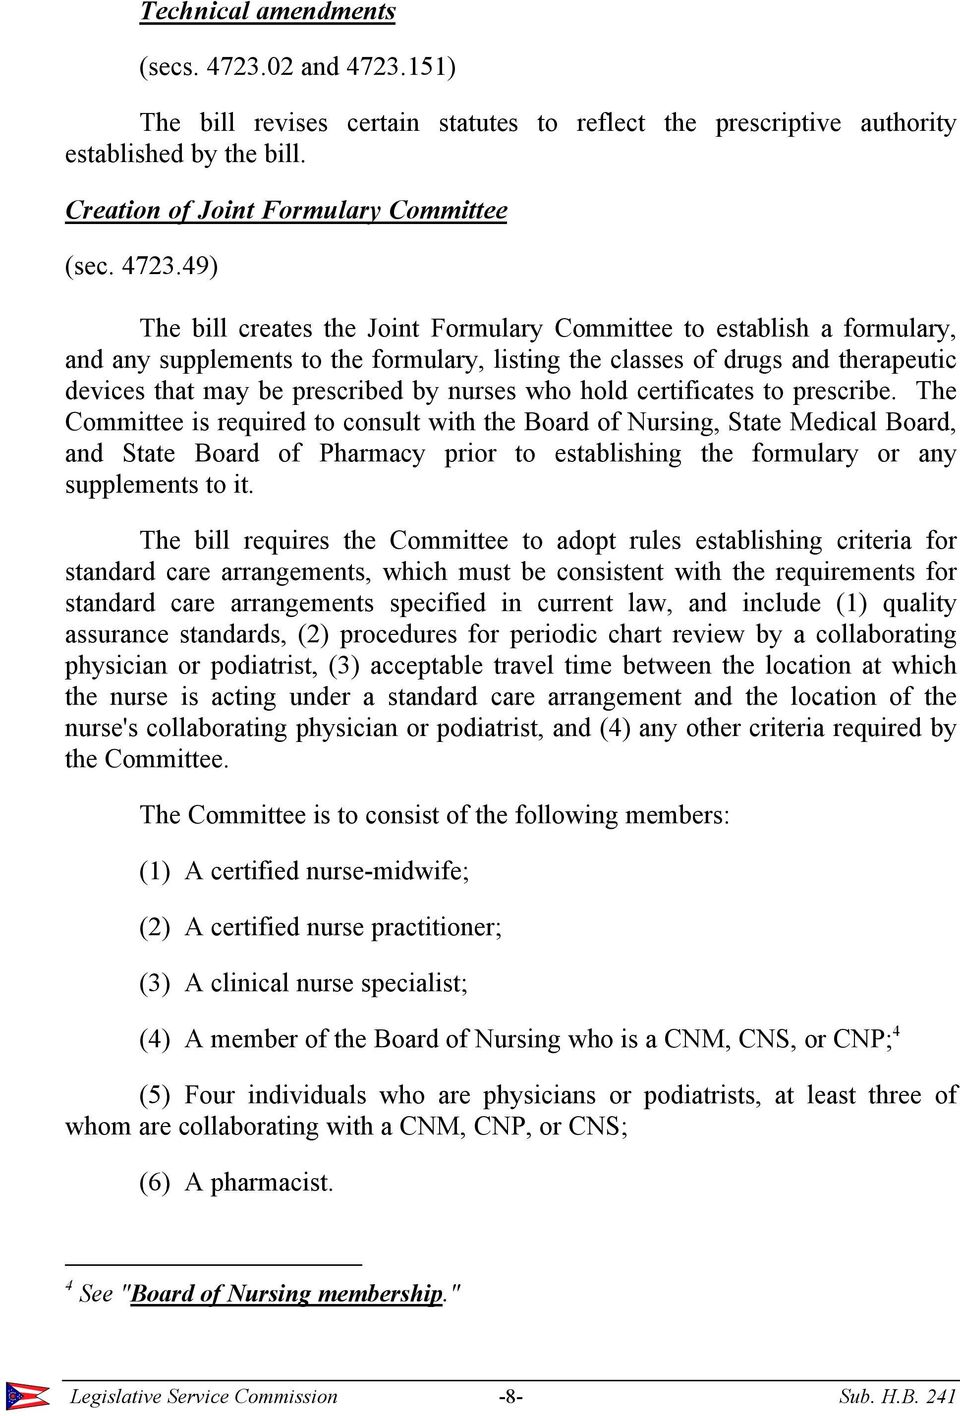 151) The bill revises certain statutes to reflect the prescriptive authority established by the bill. Creation of Joint Formulary Committee (sec. 4723.